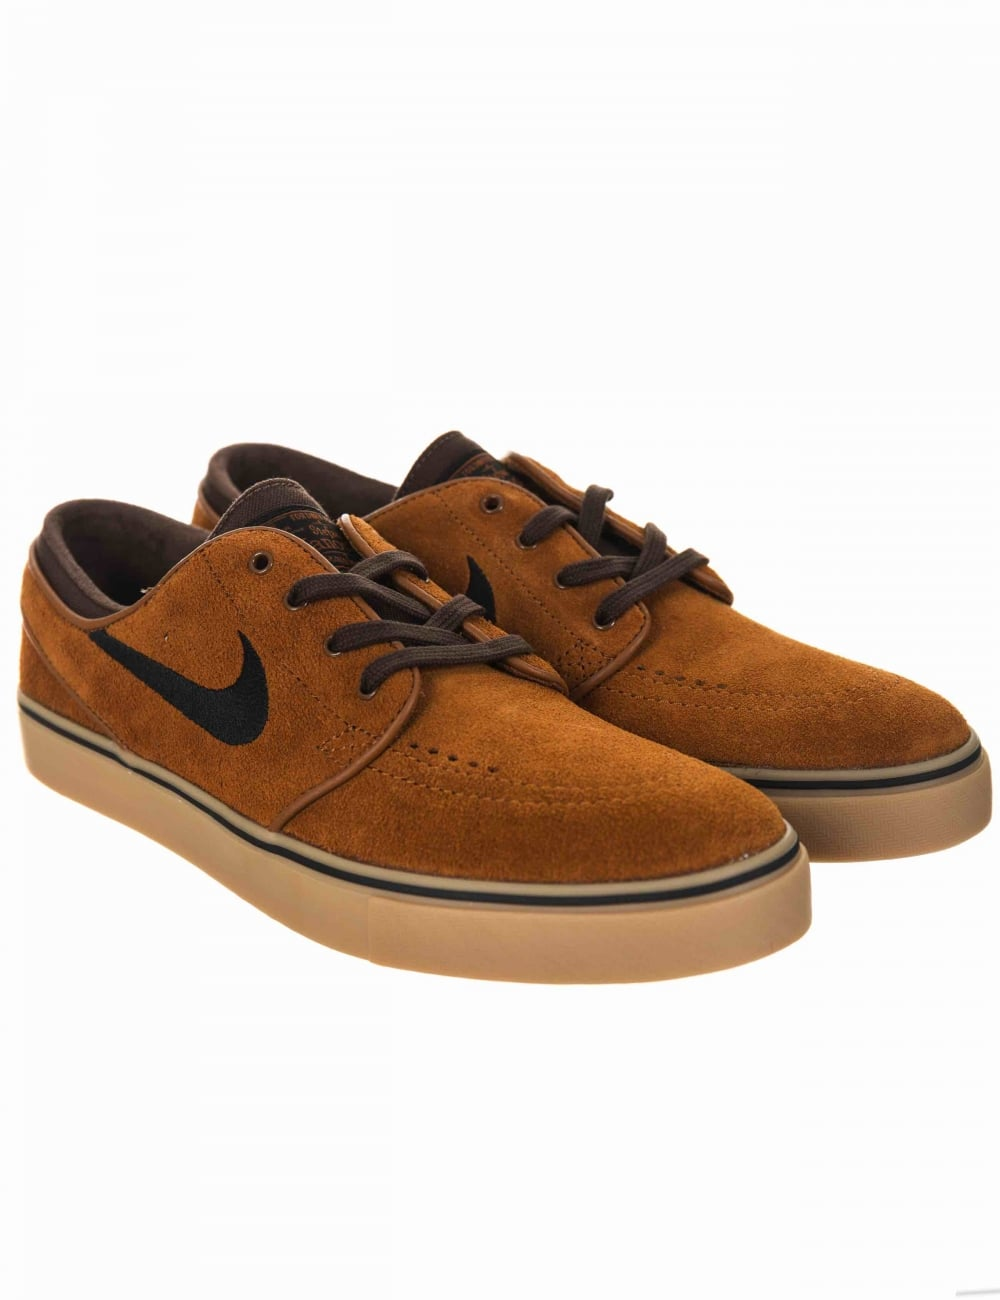 2cdf9cc4c6df30 Nike SB Stefan Janoski Shoes - Hazlenut Black - Trainers from Fat ...